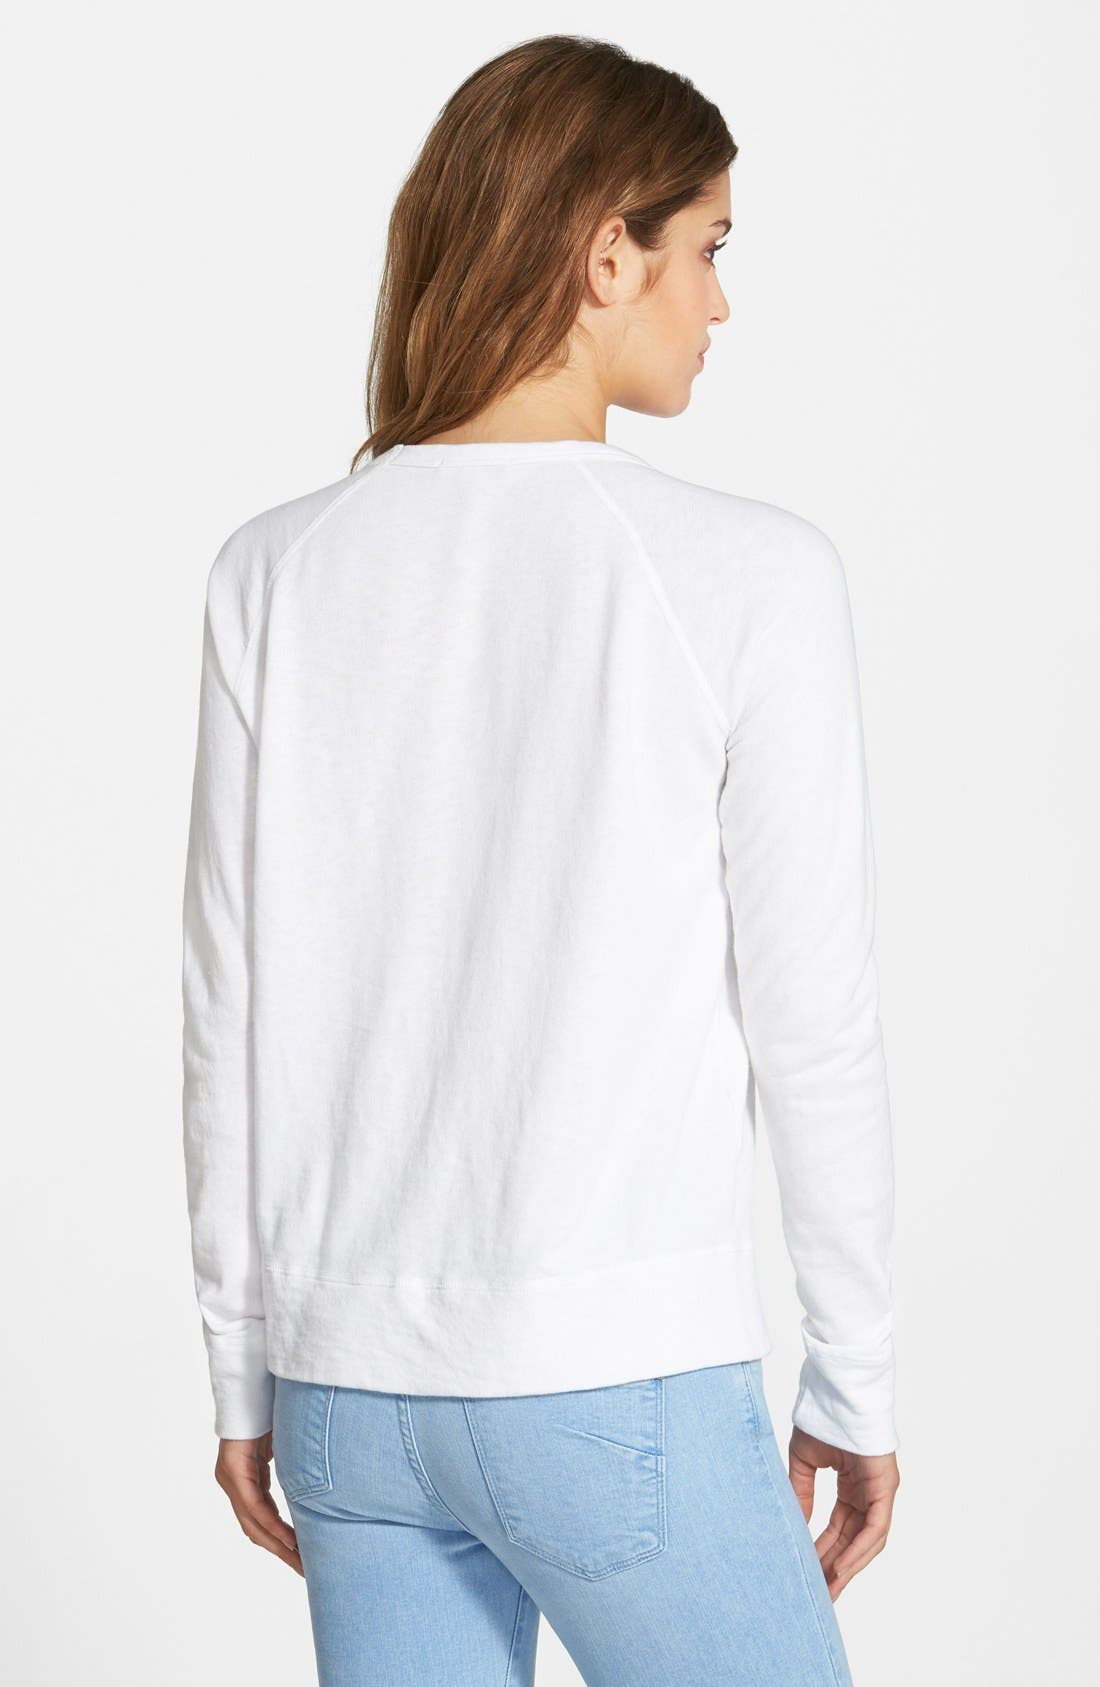 JAMES PERSE,                             Classic Raglan Sweatshirt,                             Alternate thumbnail 8, color,                             100